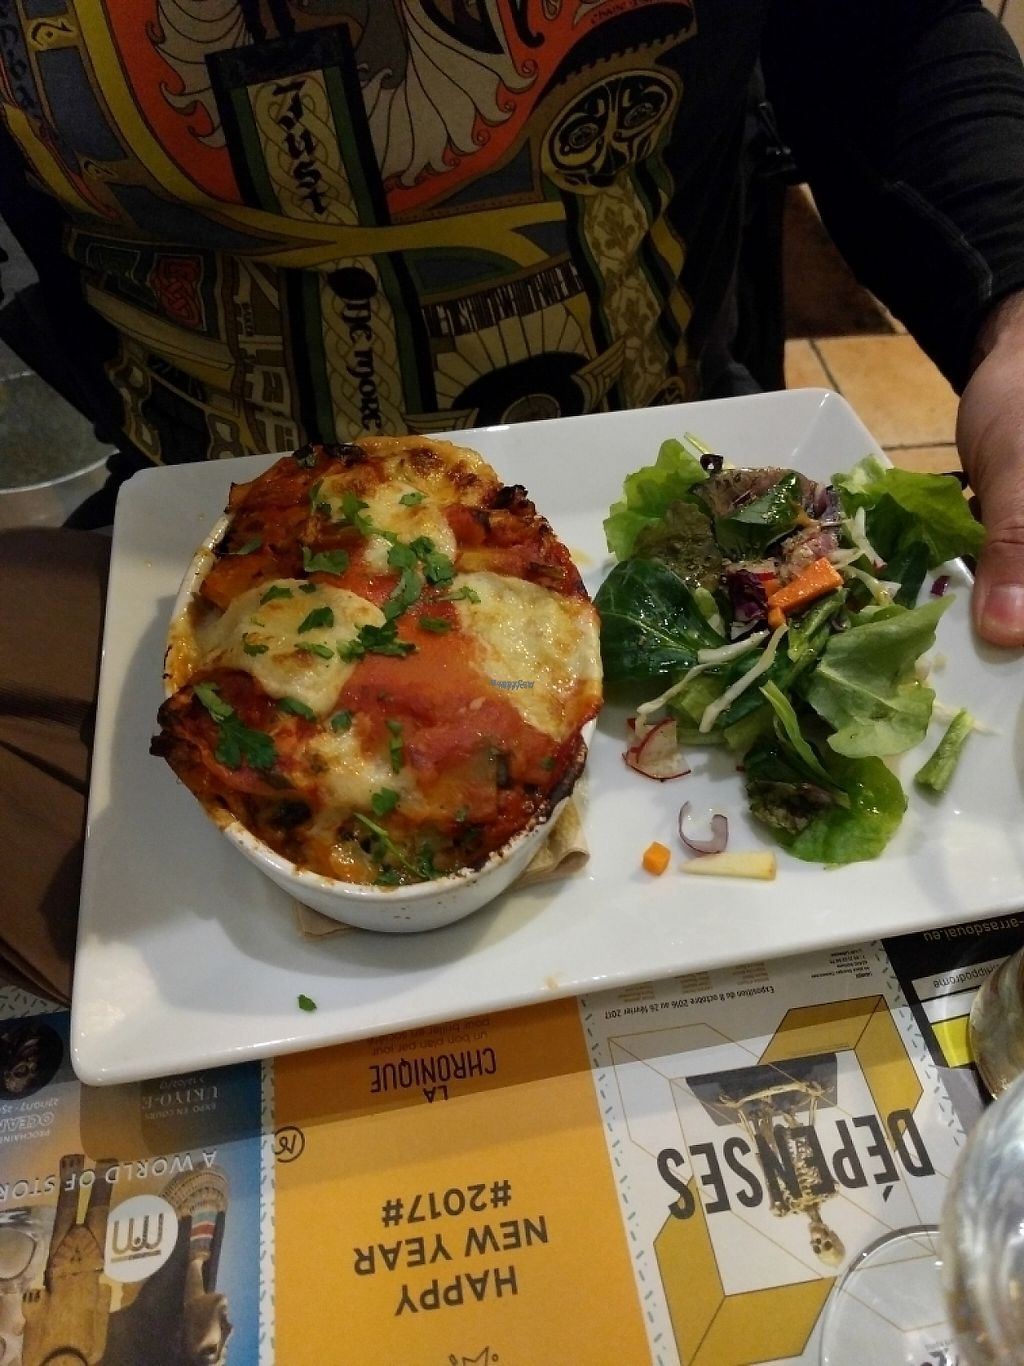 """Photo of Mezzaluna  by <a href=""""/members/profile/Shiru"""">Shiru</a> <br/>lasagna with leeks and cheese <br/> January 14, 2017  - <a href='/contact/abuse/image/54608/211993'>Report</a>"""